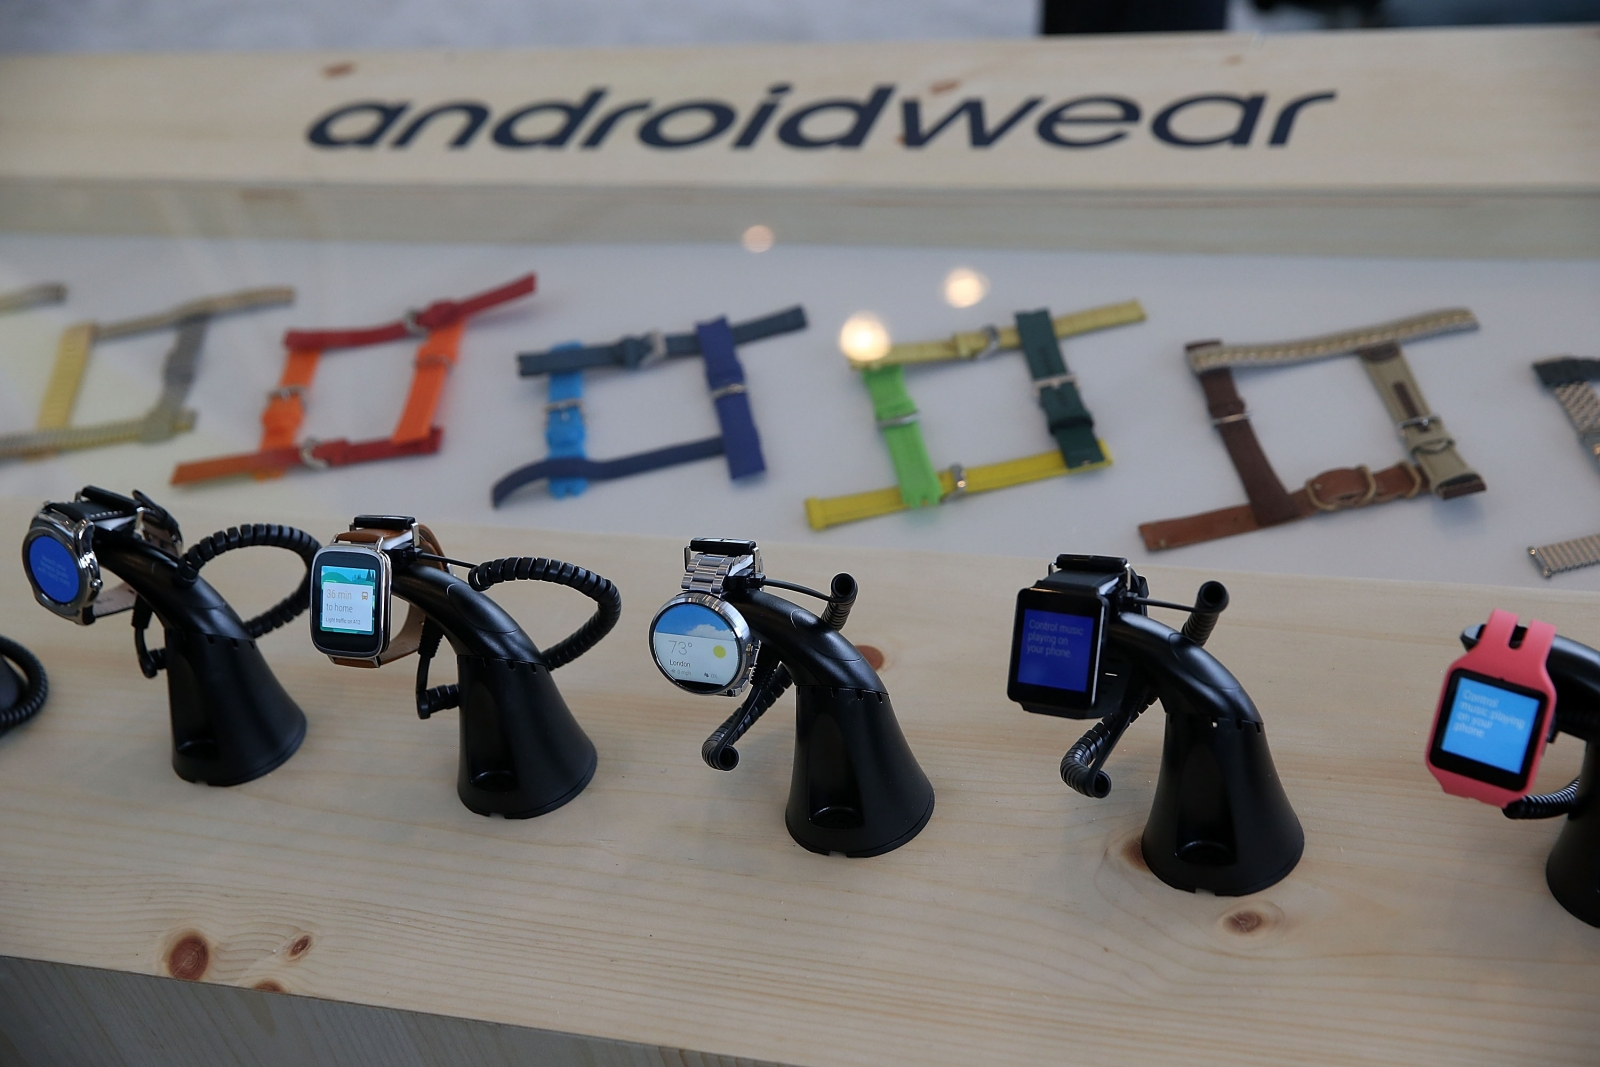 Android Wear Watch: Google Likely Developing 2 Products